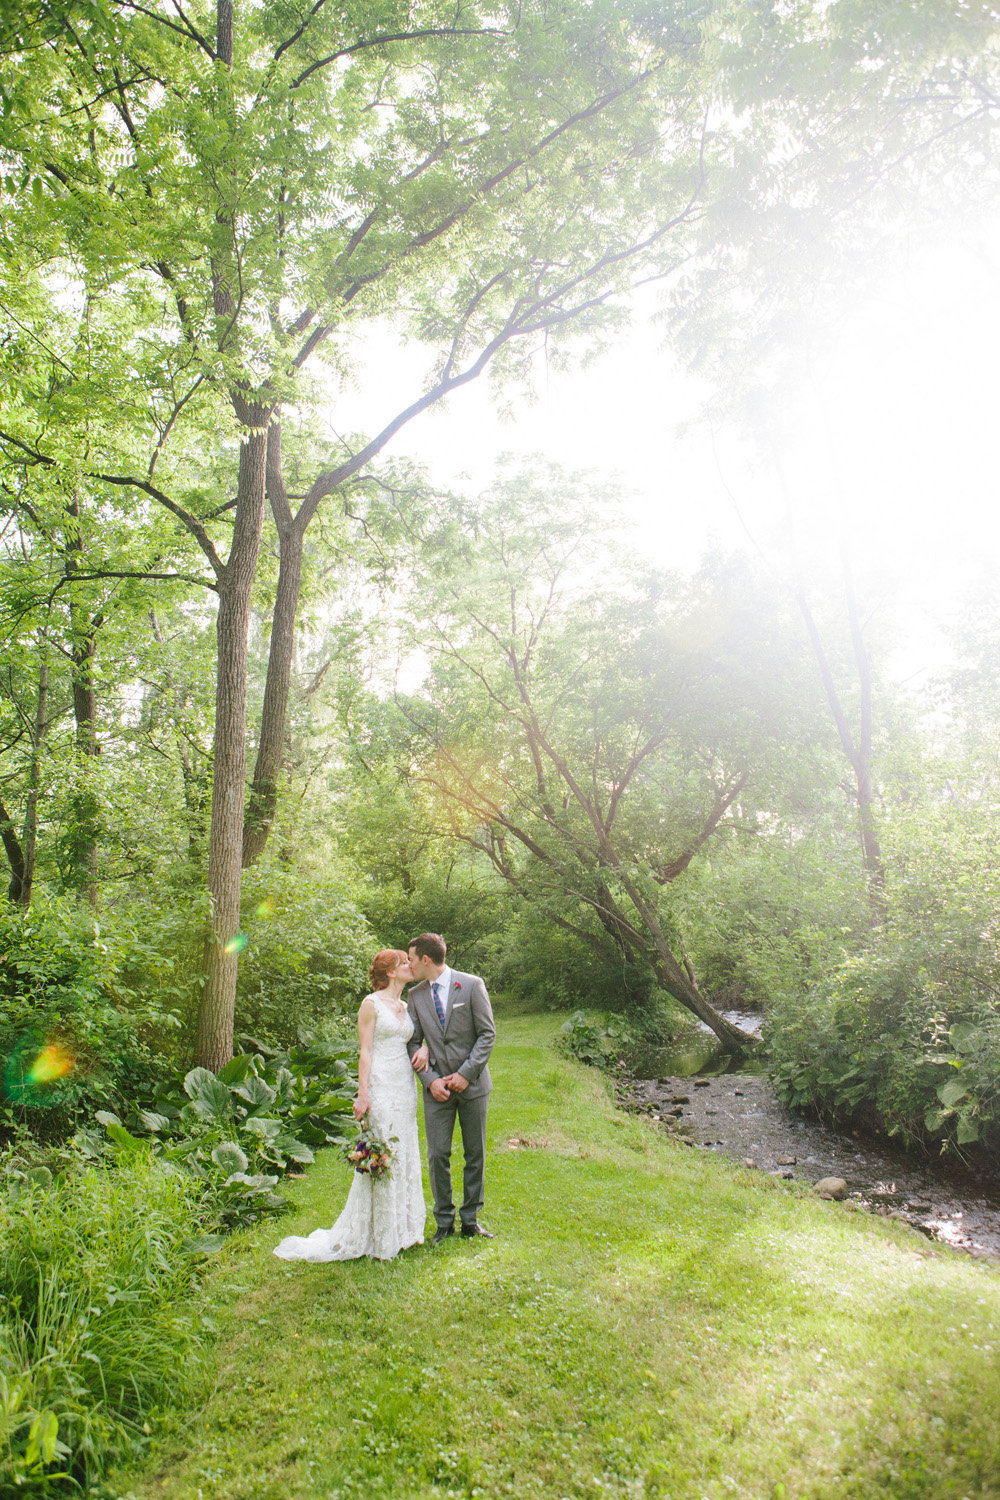 c Backyard Wedding Photography Lehigh Valley Pa Wedding Photographer Back Yard-003